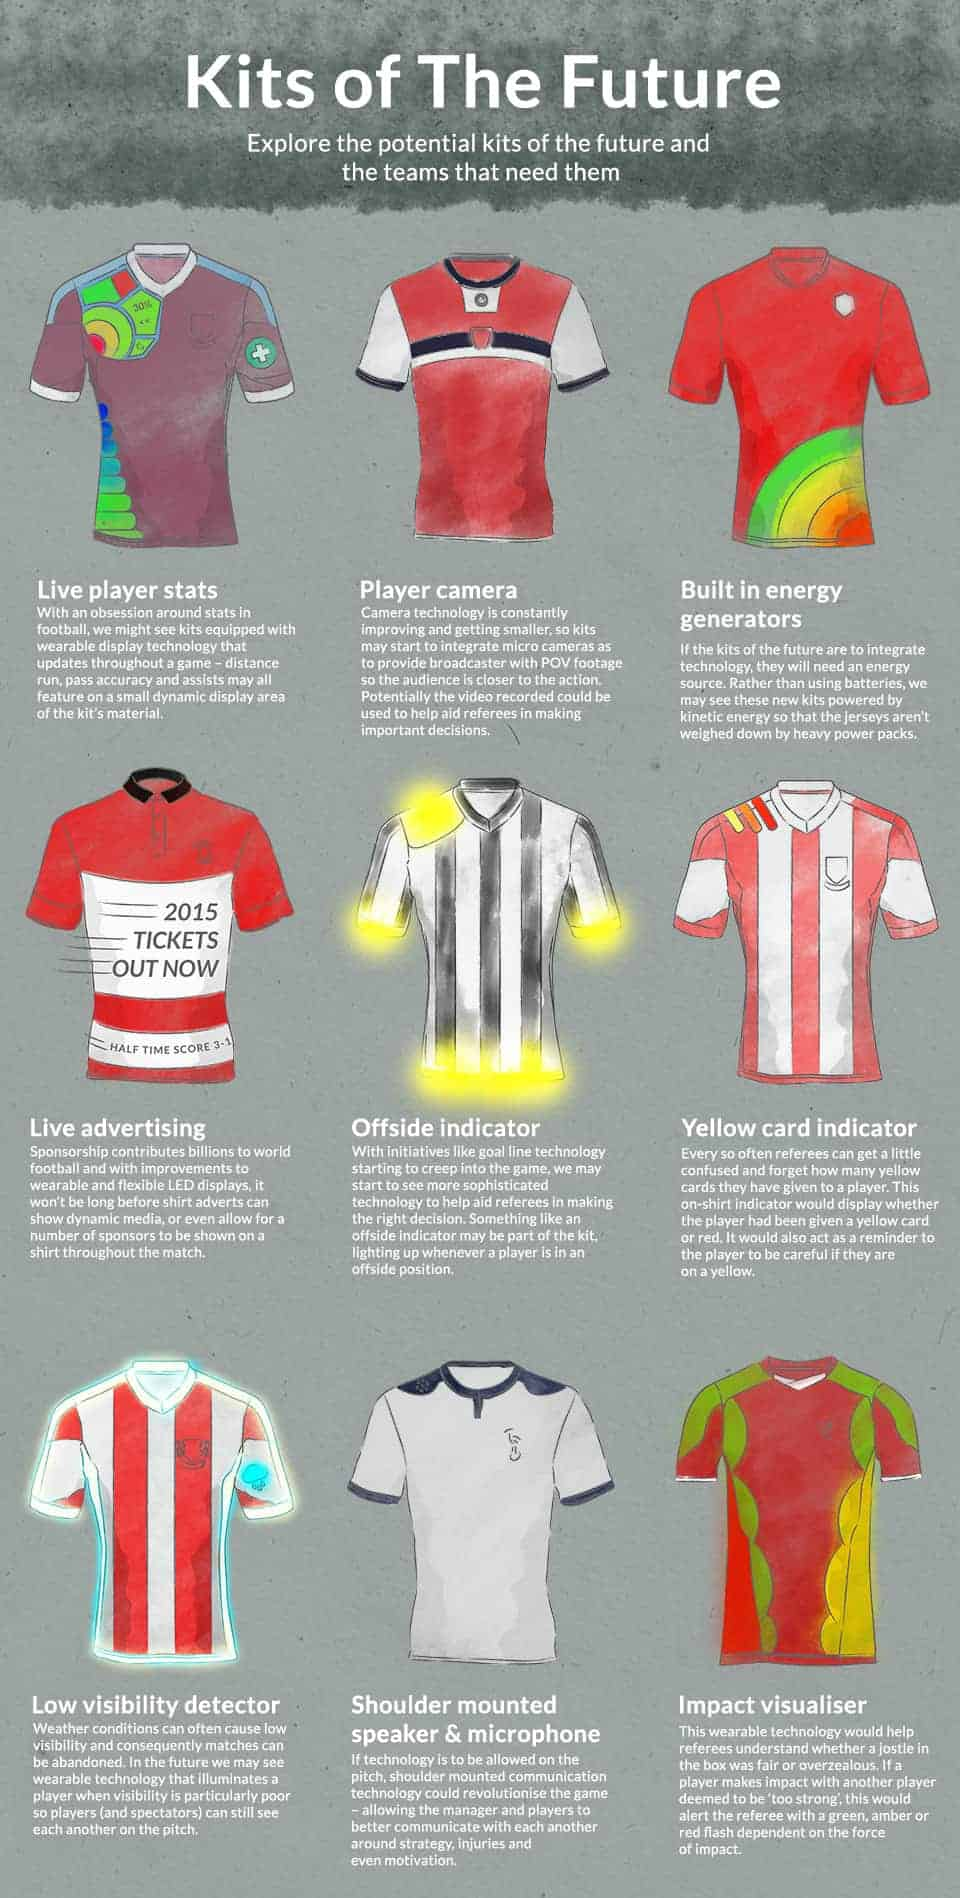 kits-of-the-future